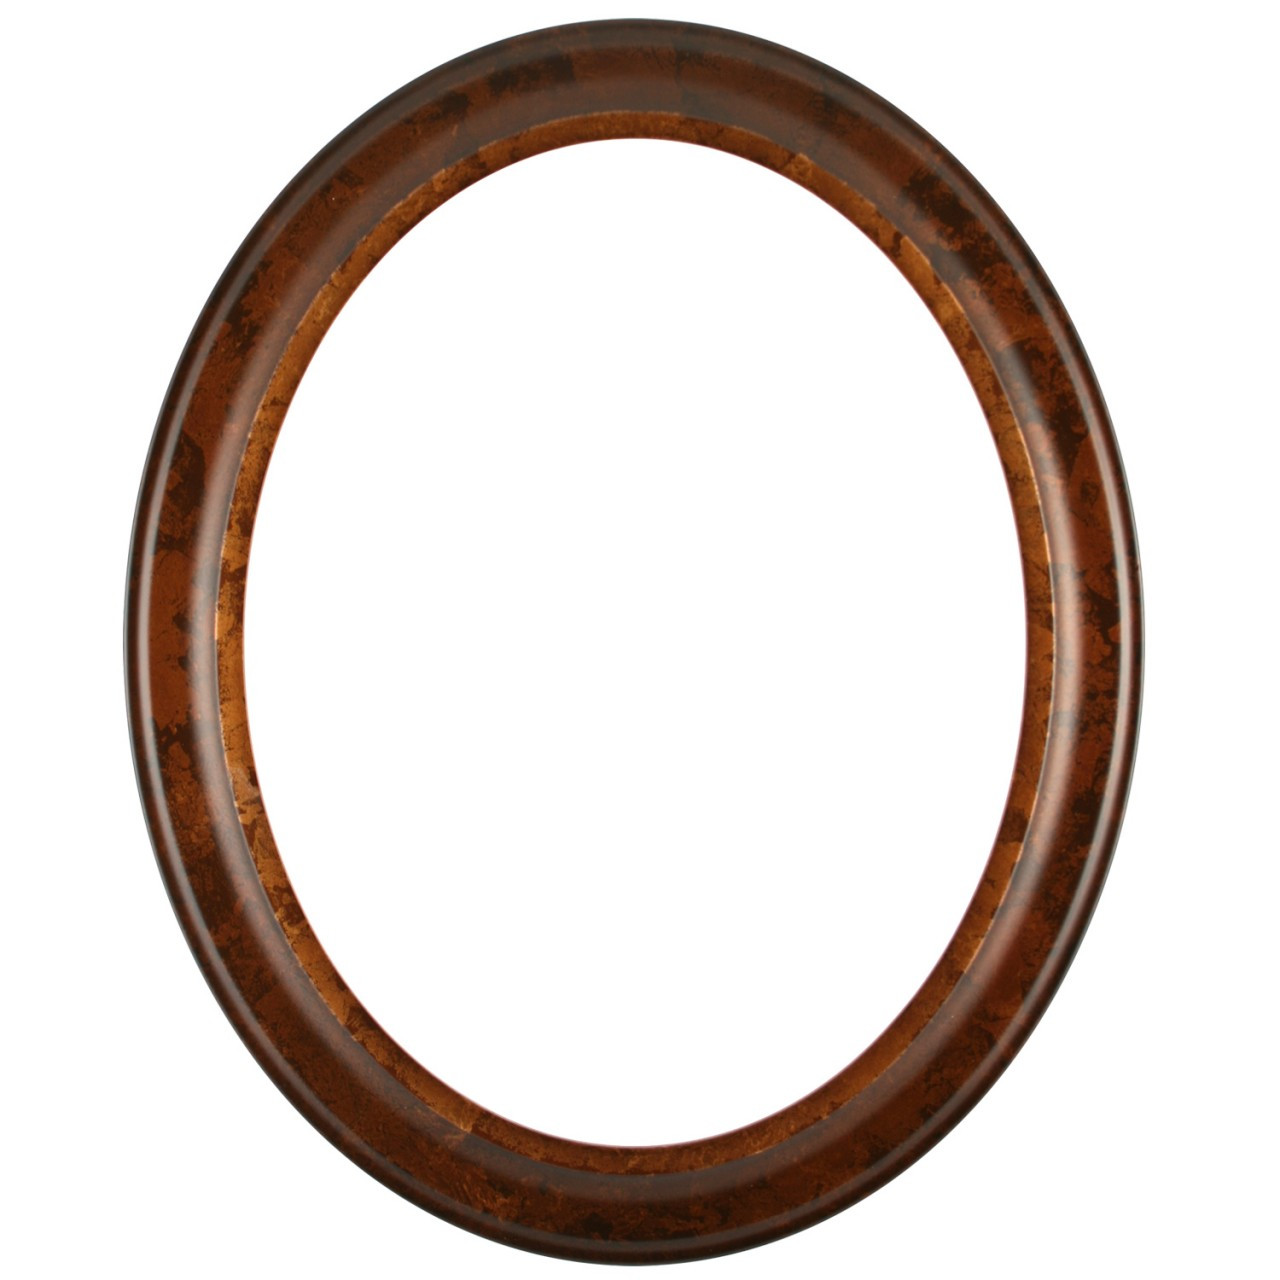 Antique oval picture frame with curved glass best 2000 antique antique oval picture frame with curved gl best 2000 jeuxipadfo Image collections